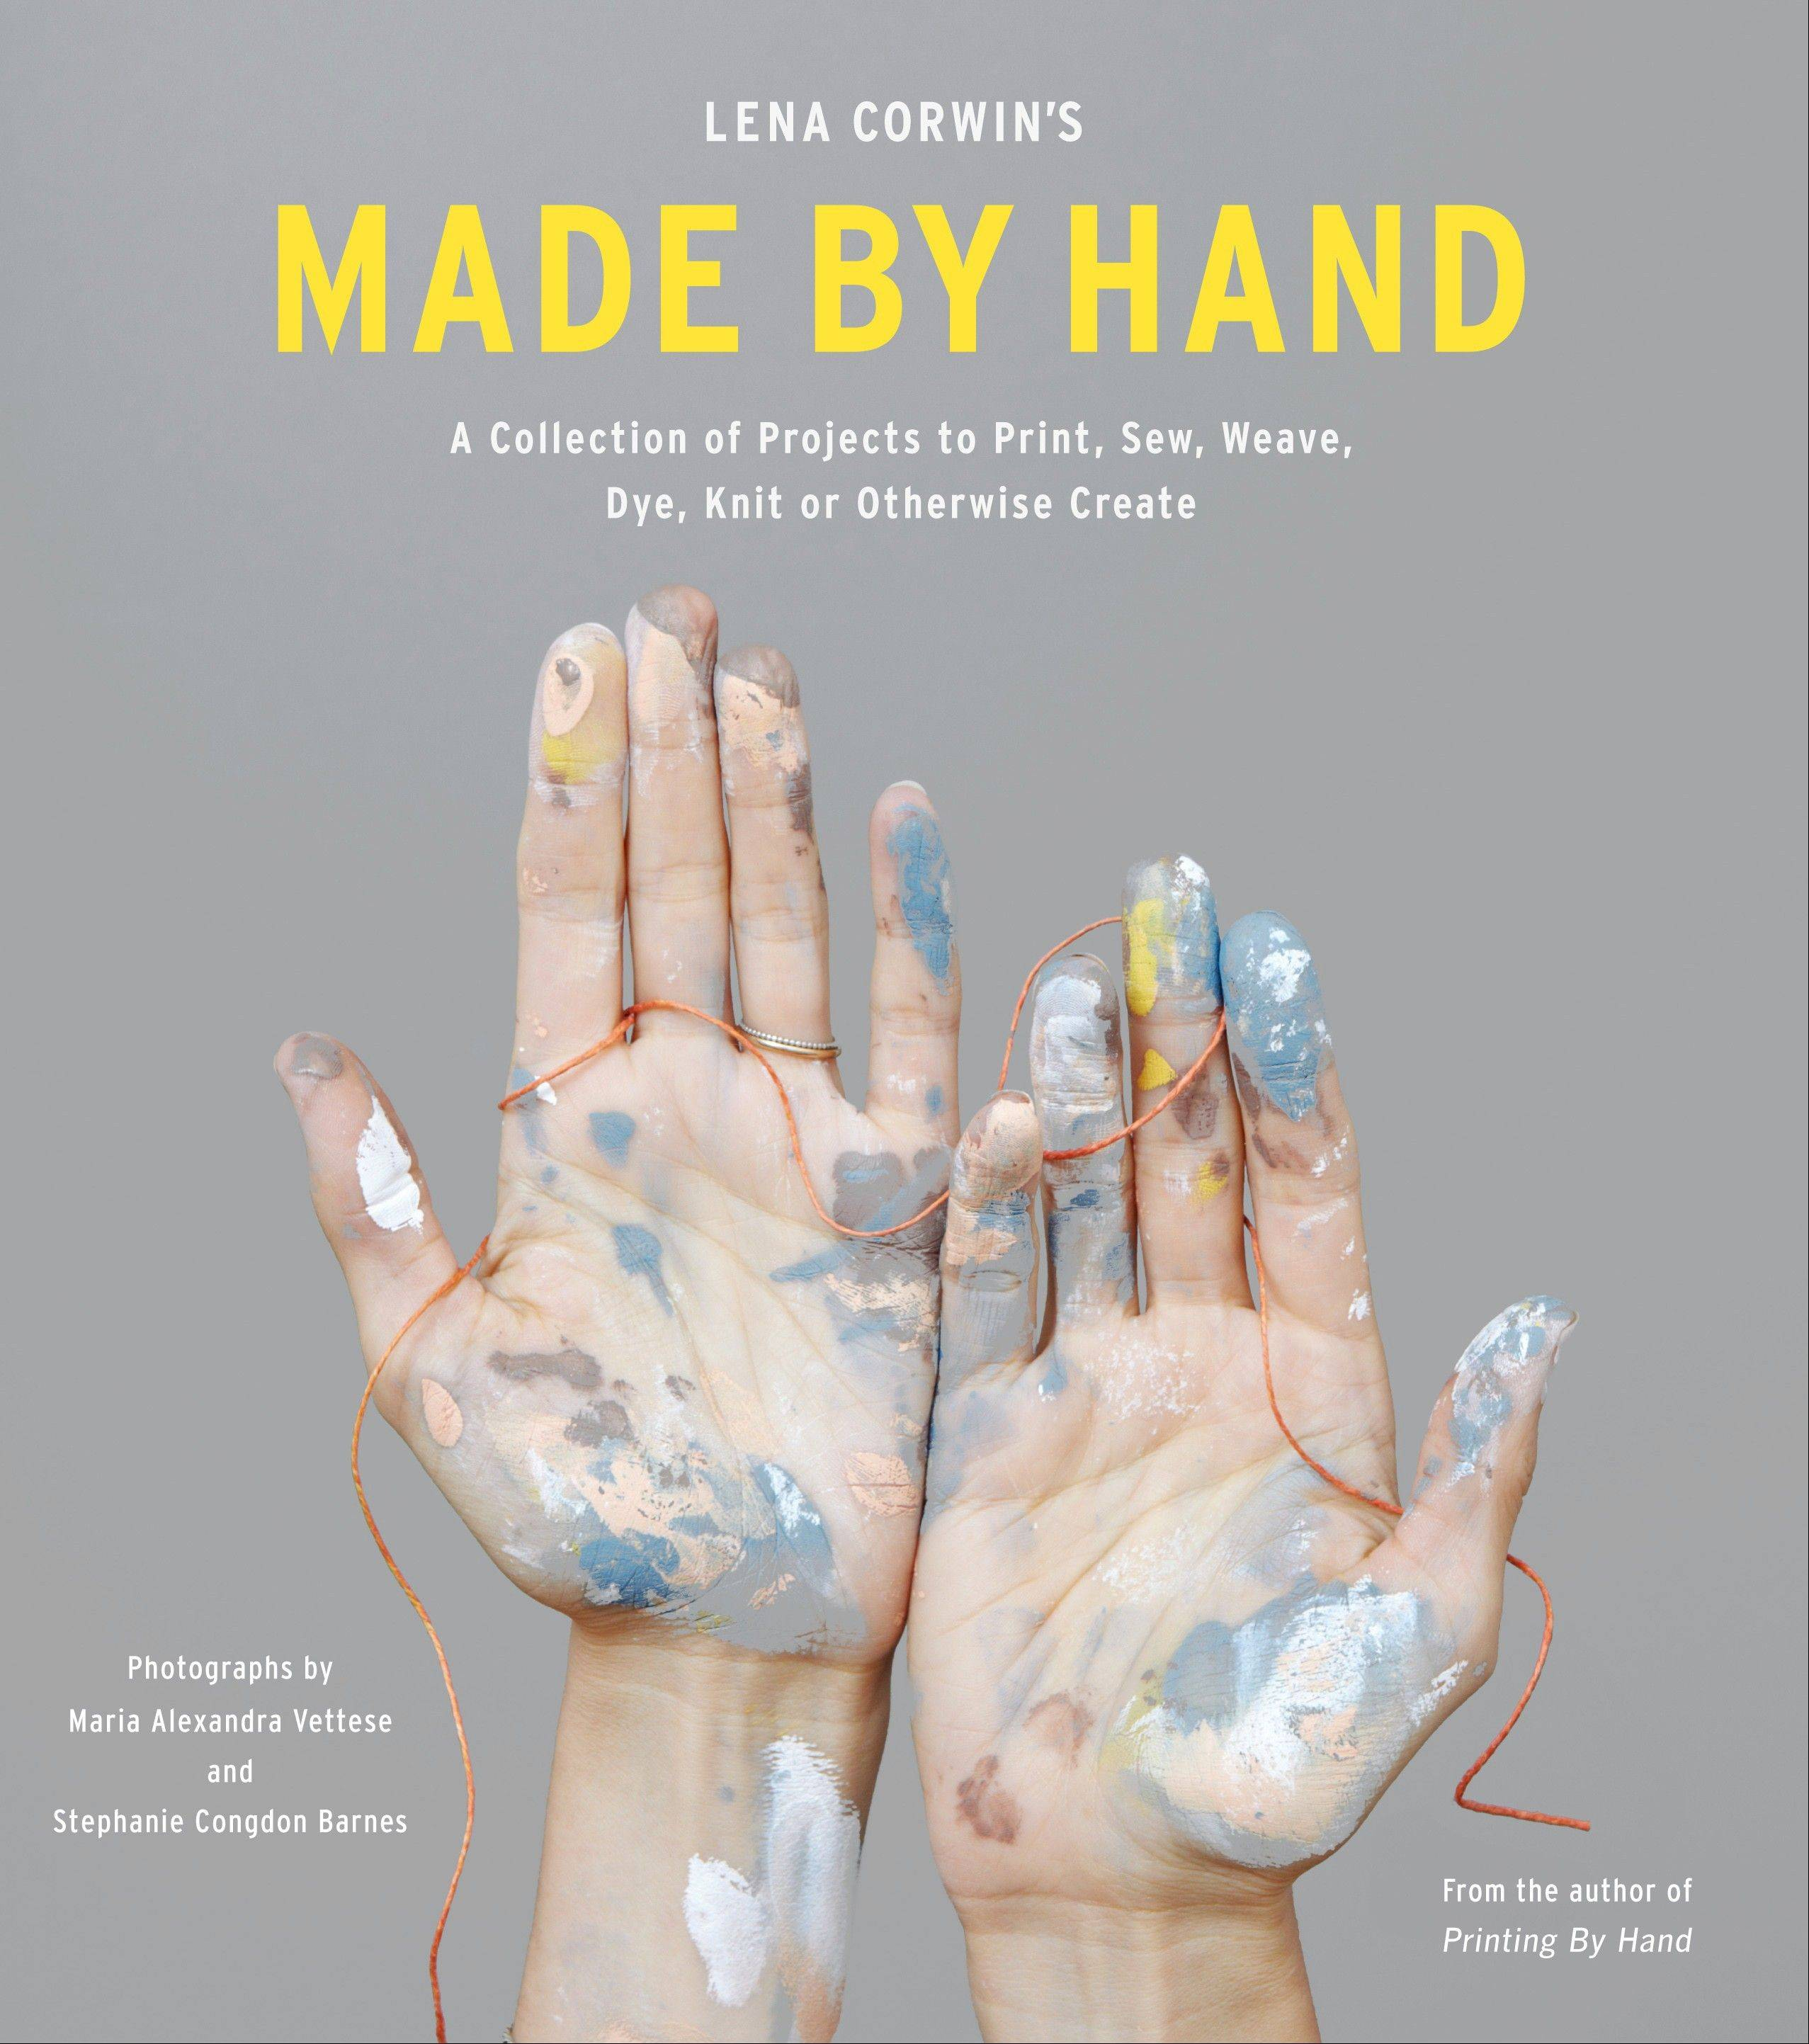 """Lena Corwin's Made By Hand"" (STC Craft/A Melanie Falick Book, 2013)."